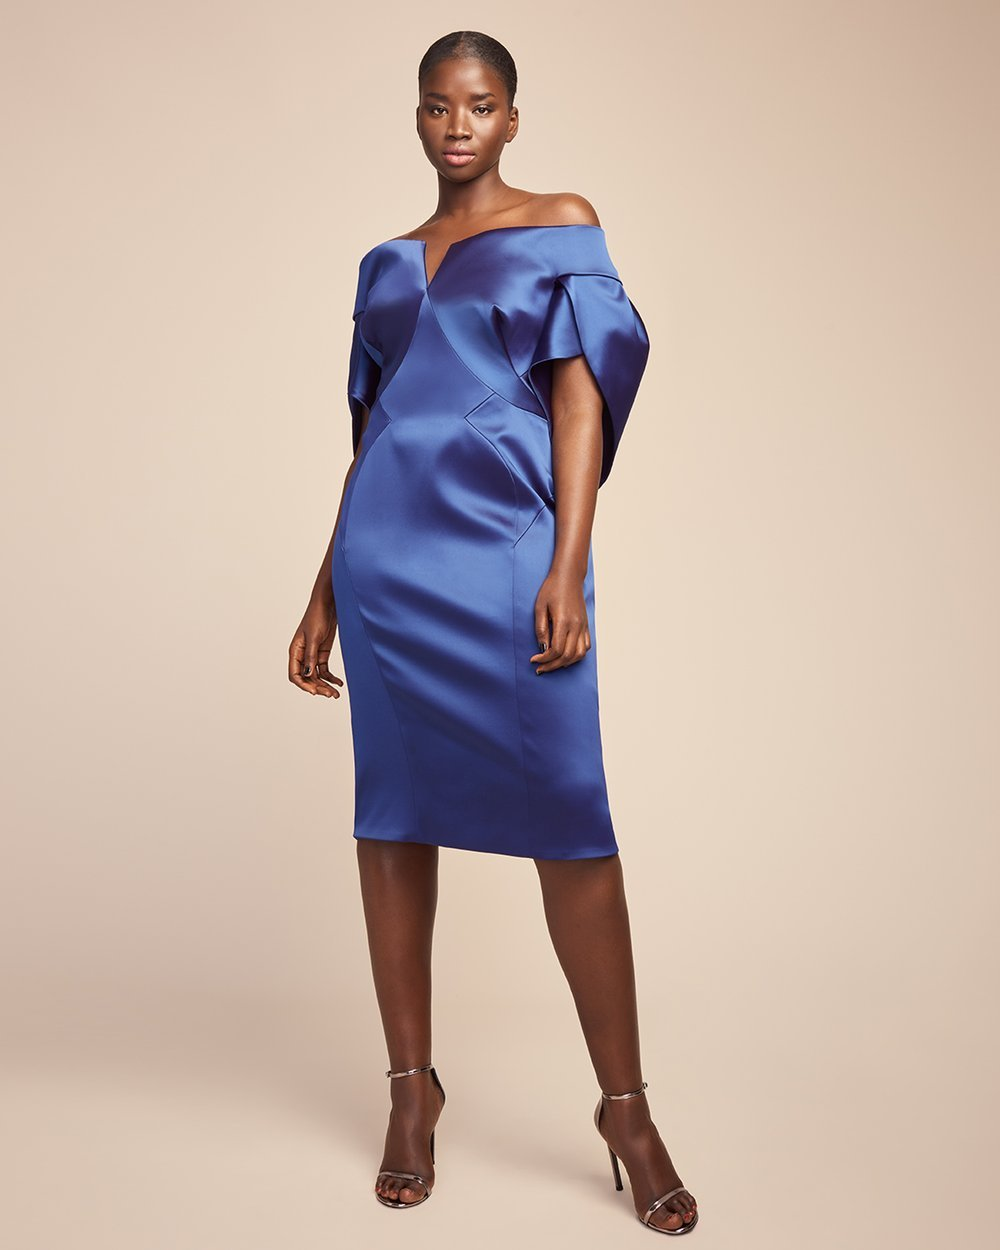 Luxury Plus SIze Fashion Finds at 11 Honore: ZAC POSEN Off-The-Shoulder Plus Size Dress